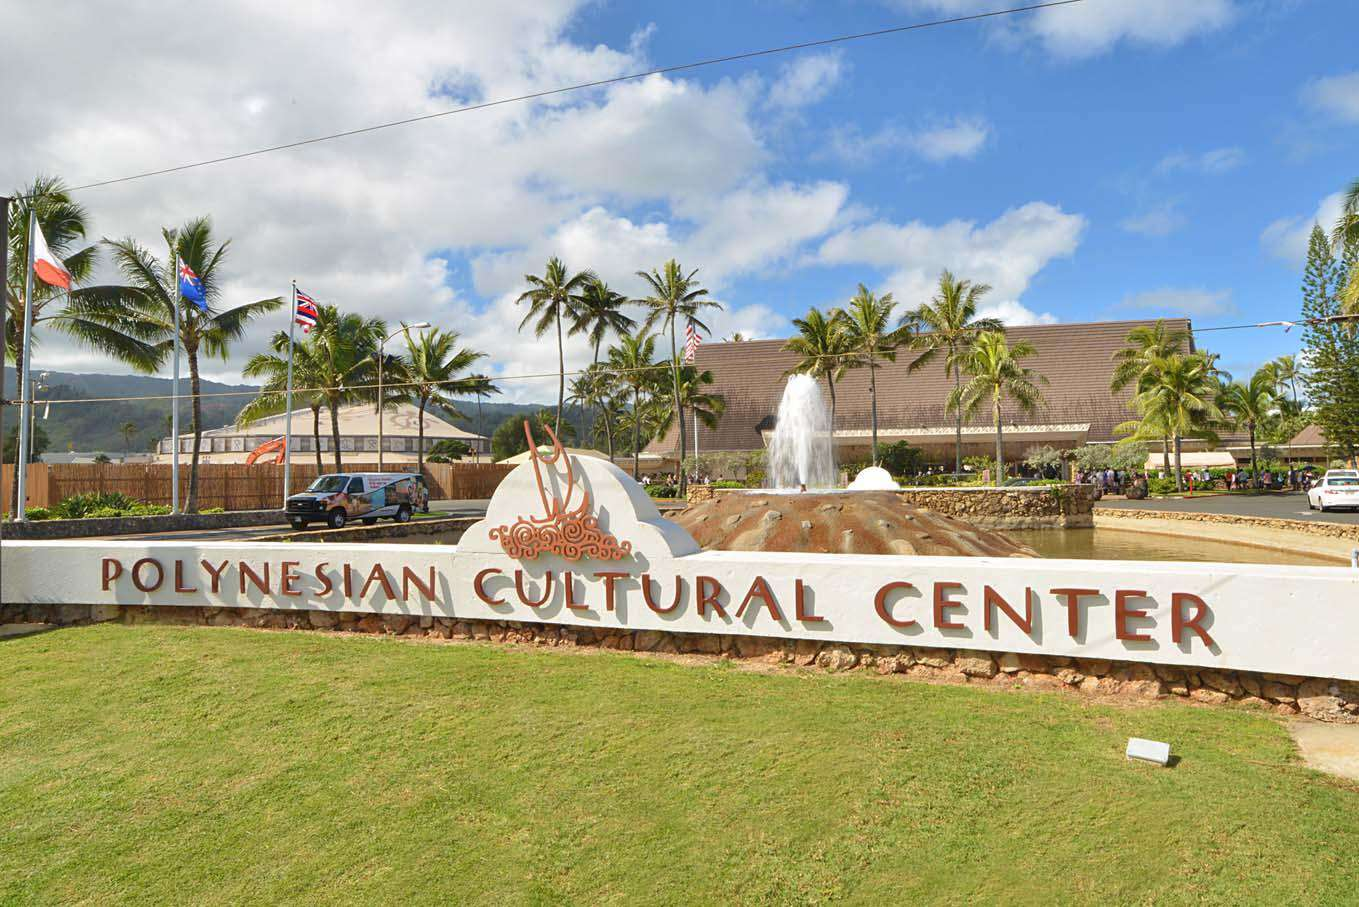 Walk across the street from the ocean side of Tiki Moon Villas to Polynesian Cultural Center